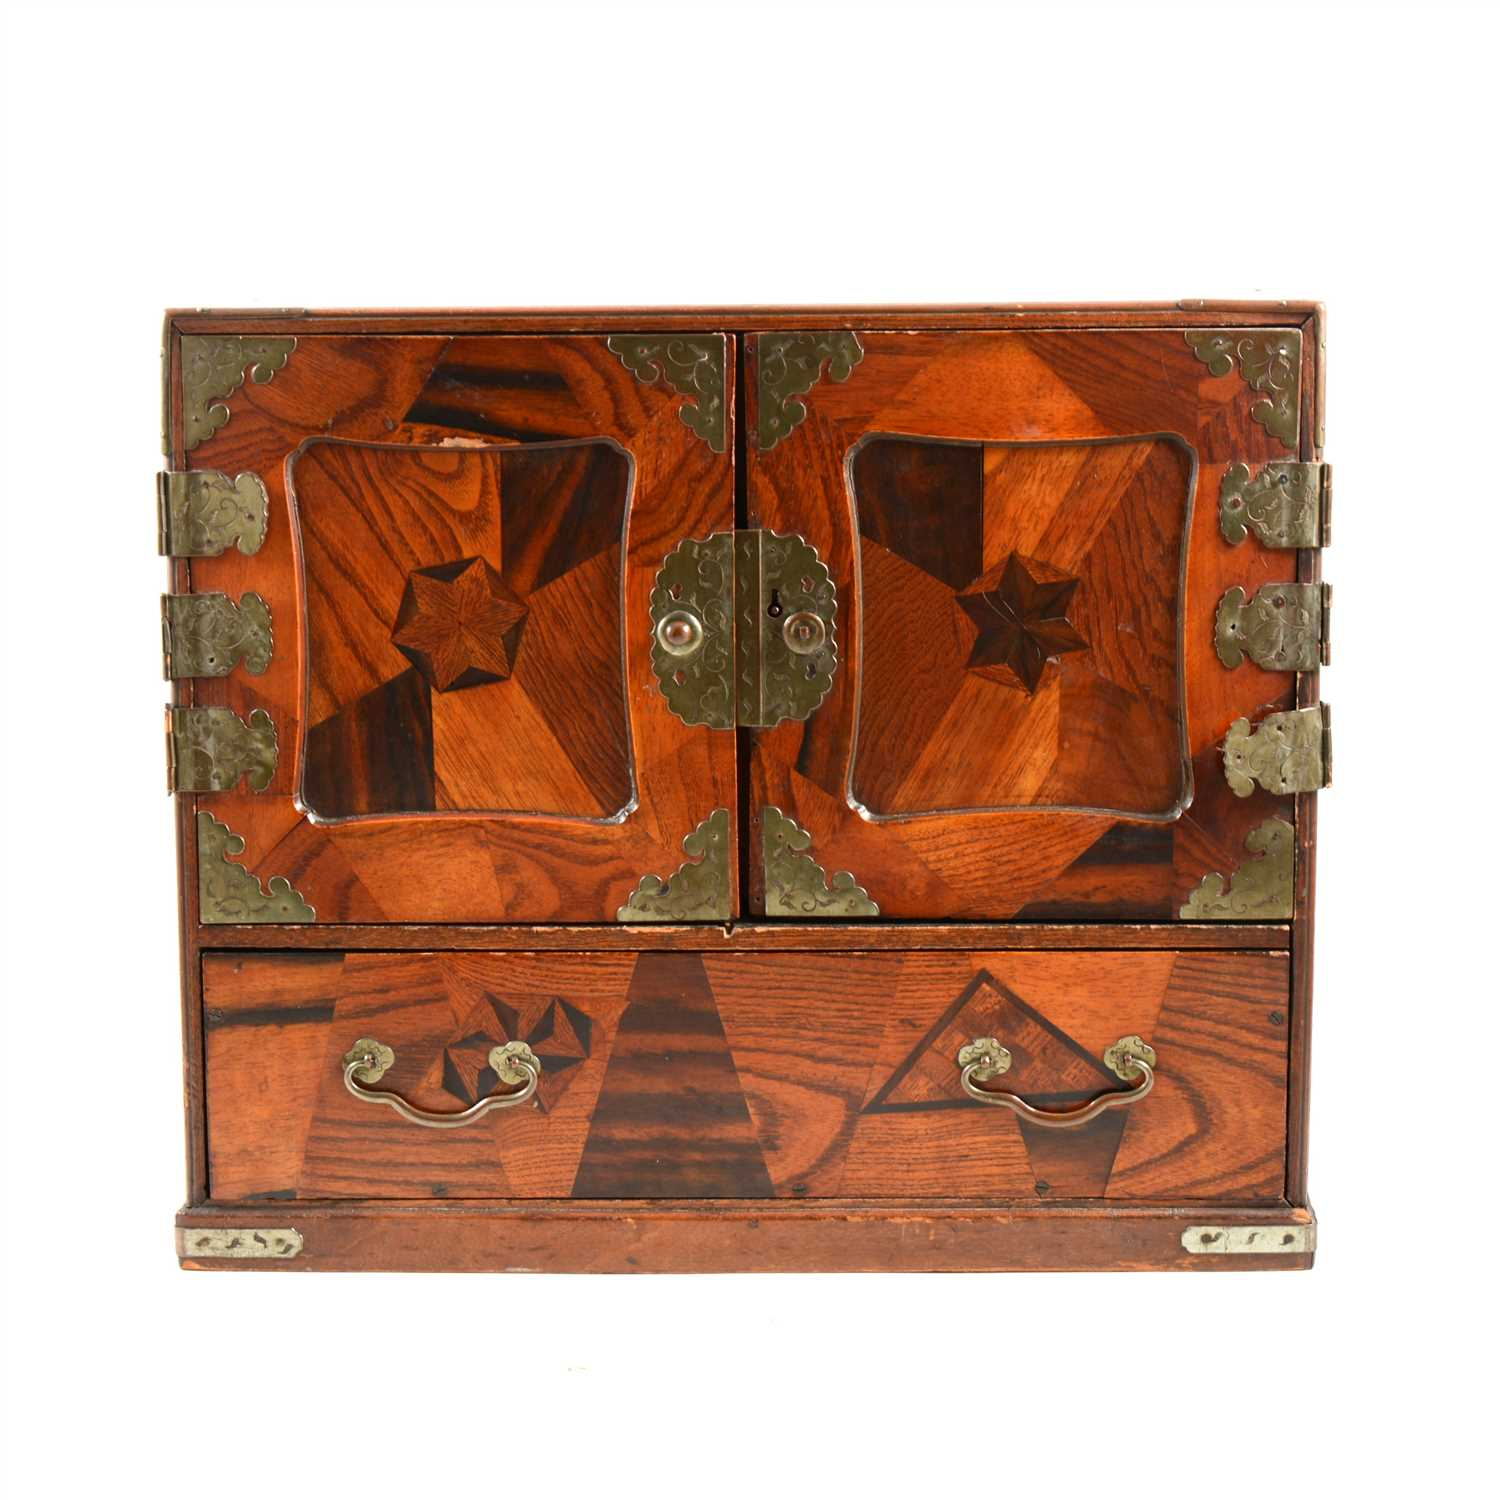 Lot 122-Japanese parquetry table cabinet